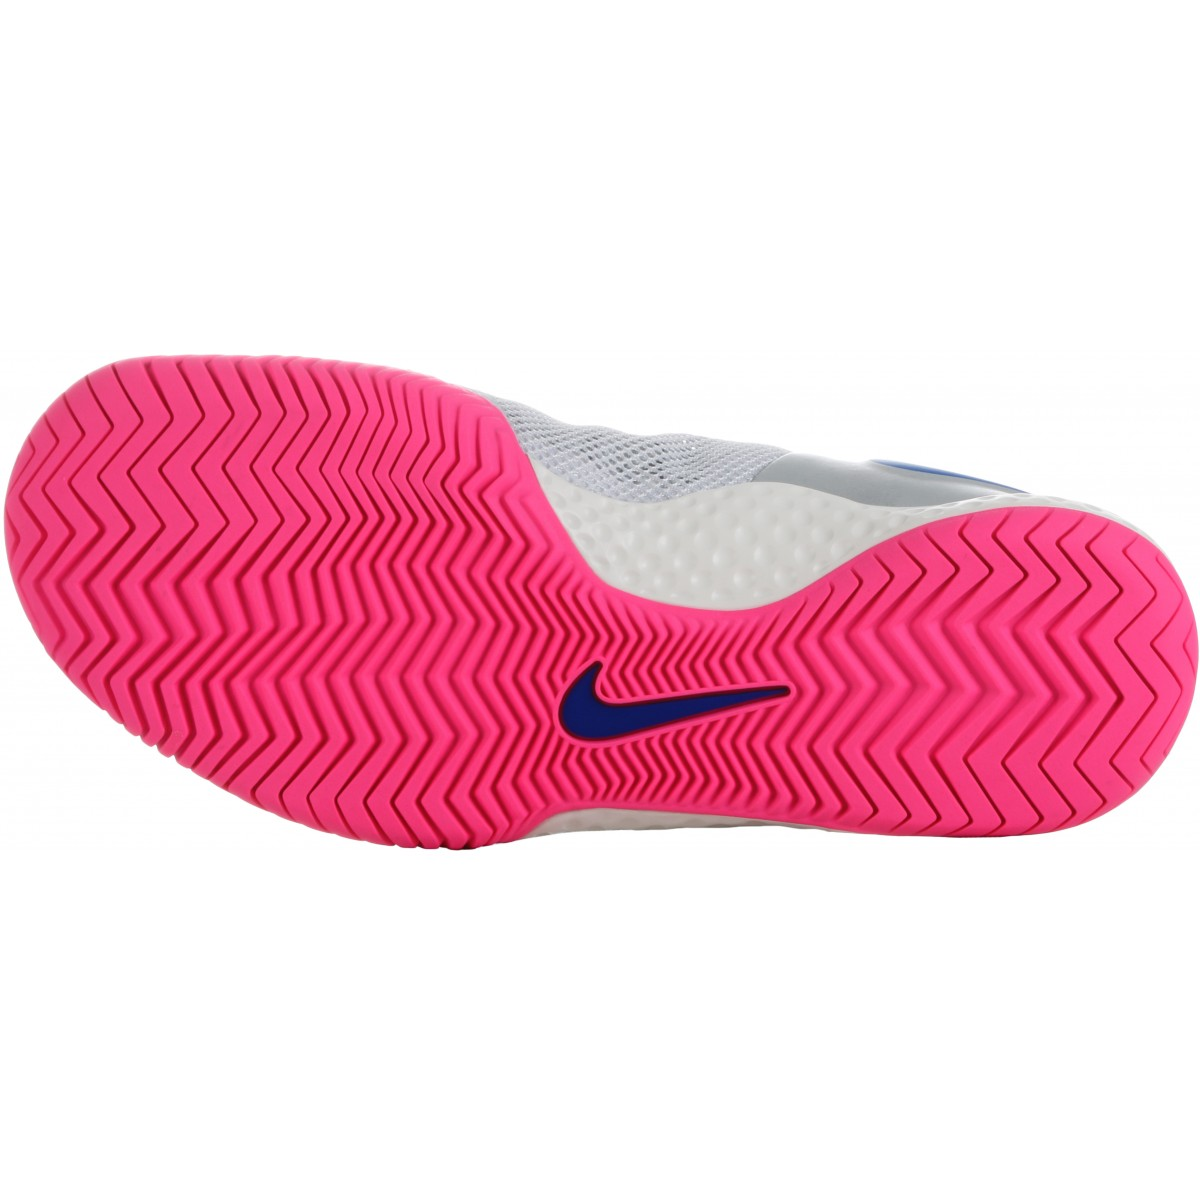 chaussure nike femme flare